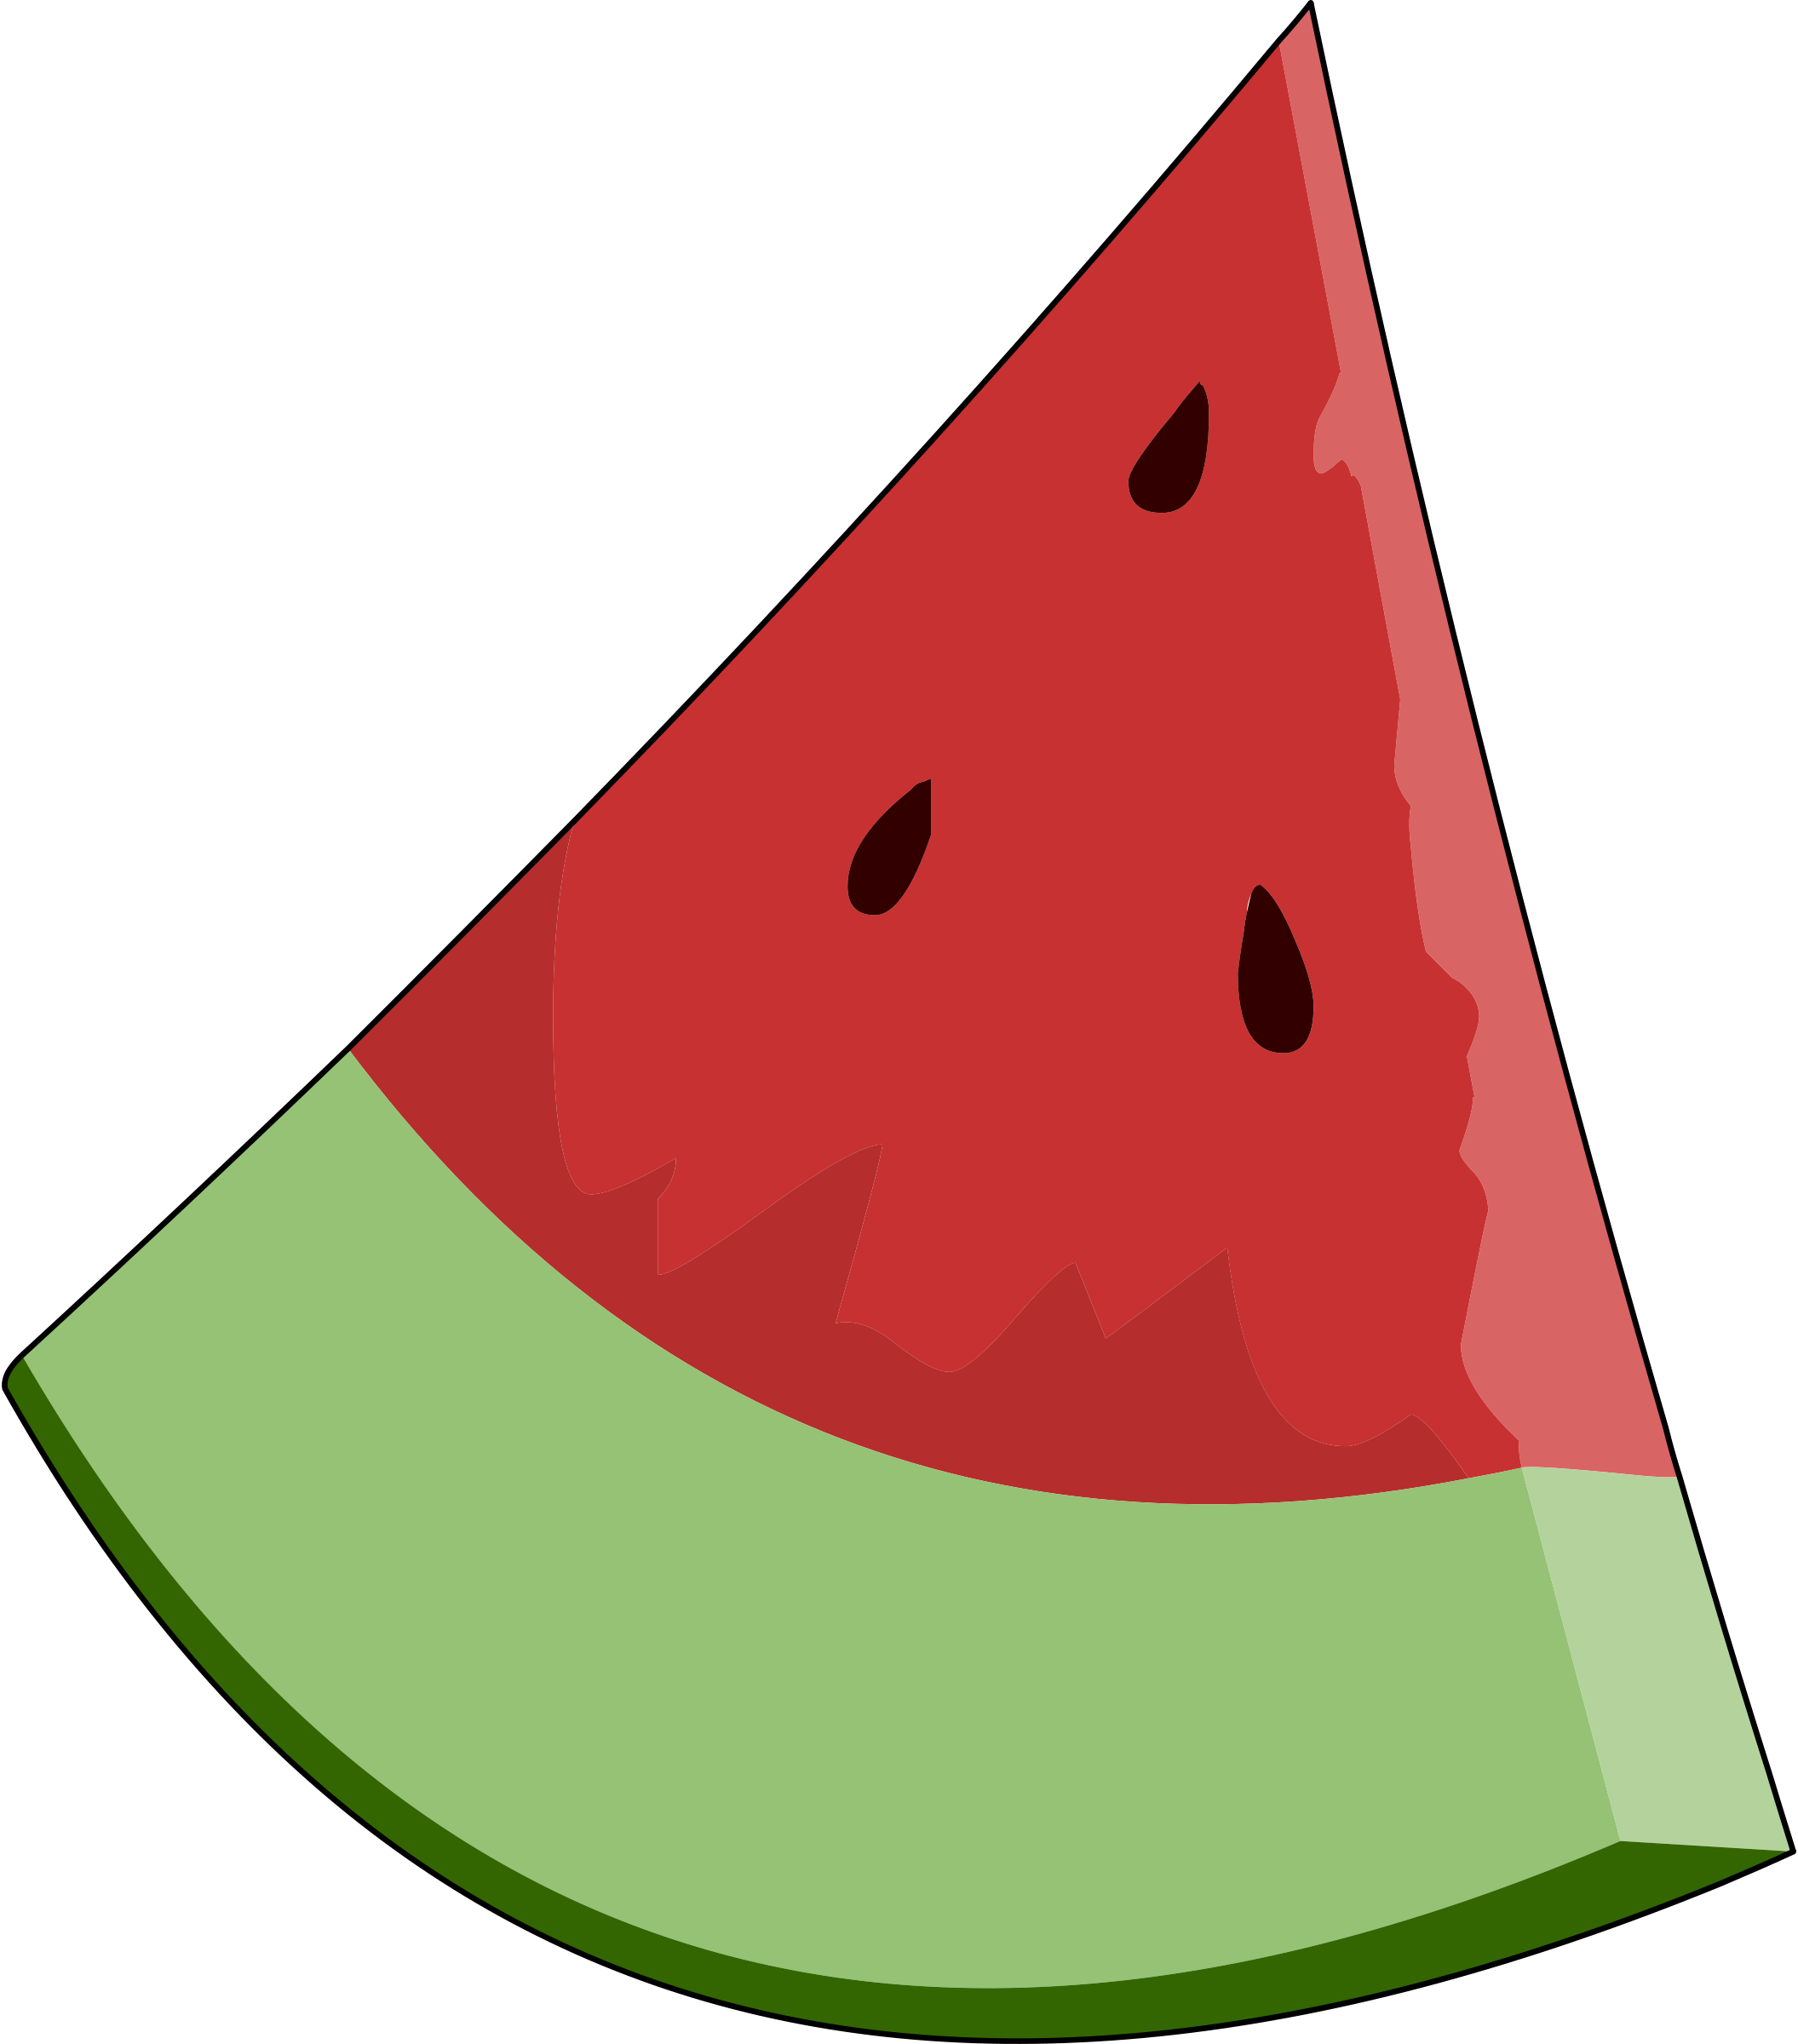 No seeds seed. Watermelon clipart baby